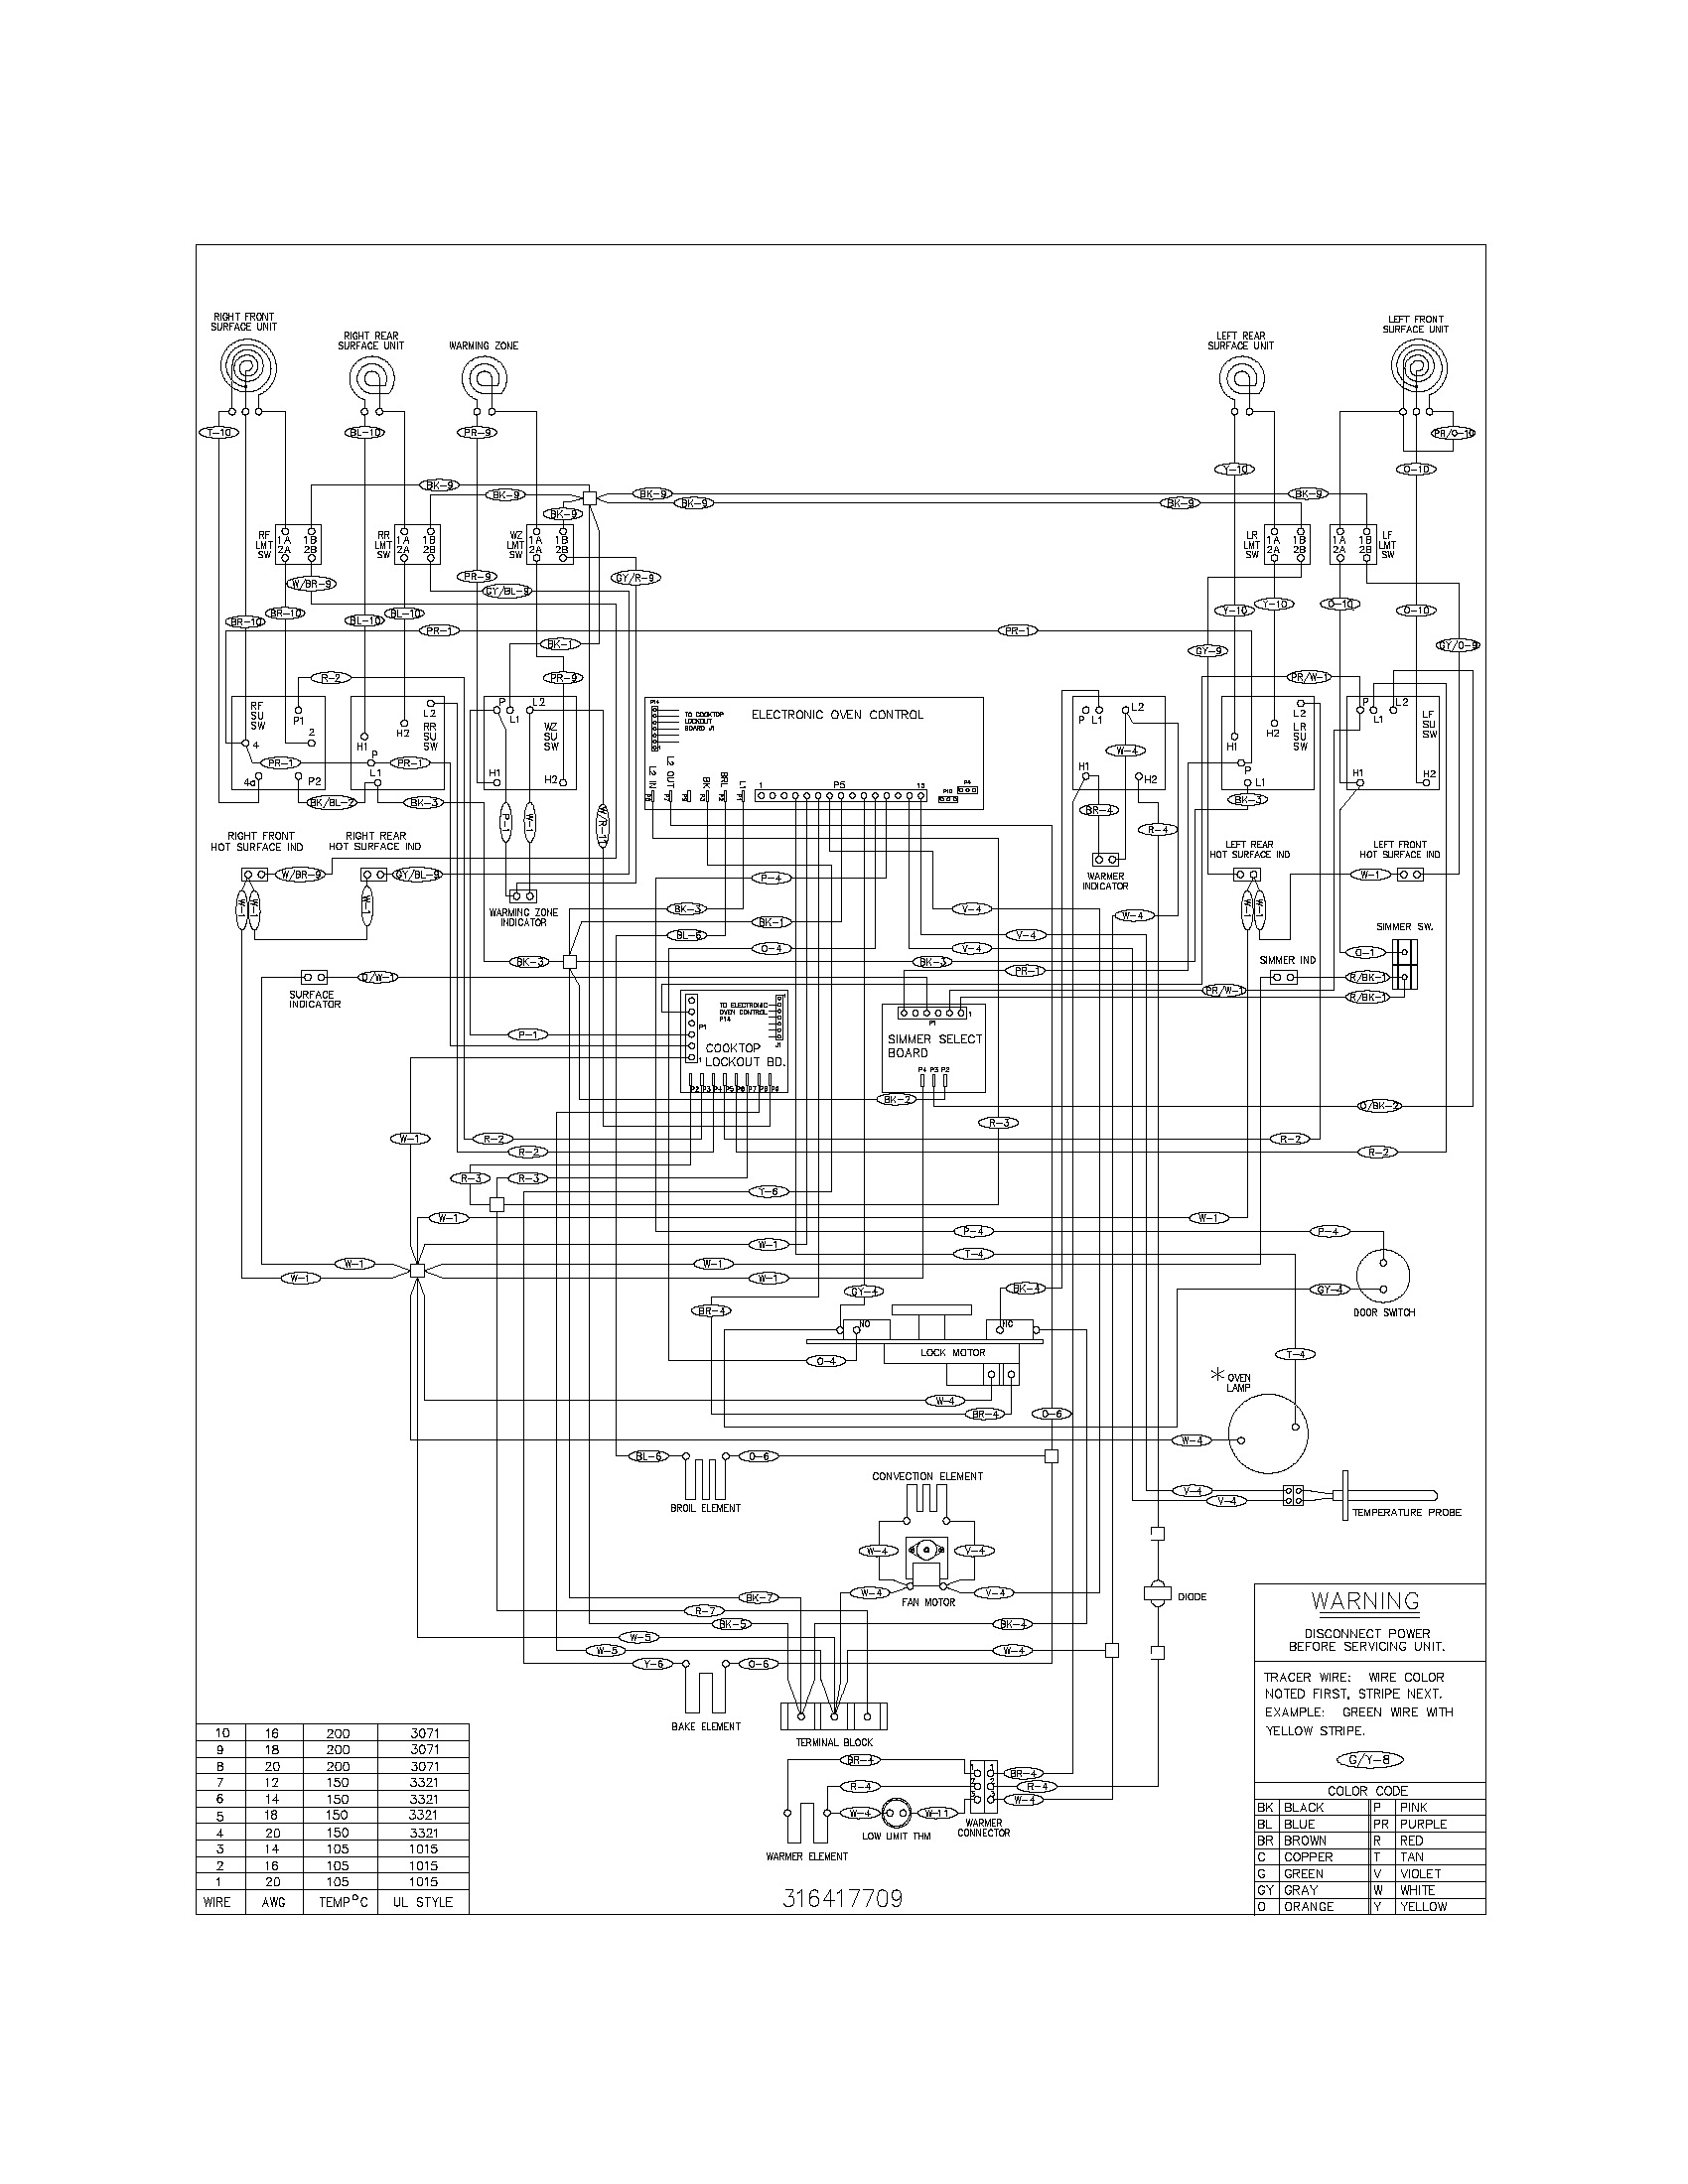 kenmore 79096612400 electric range timer - stove clocks ... for diagram range wiring whirlpool gs445lems4 diagram refrigerator wiring whirlpool et86hmxlq